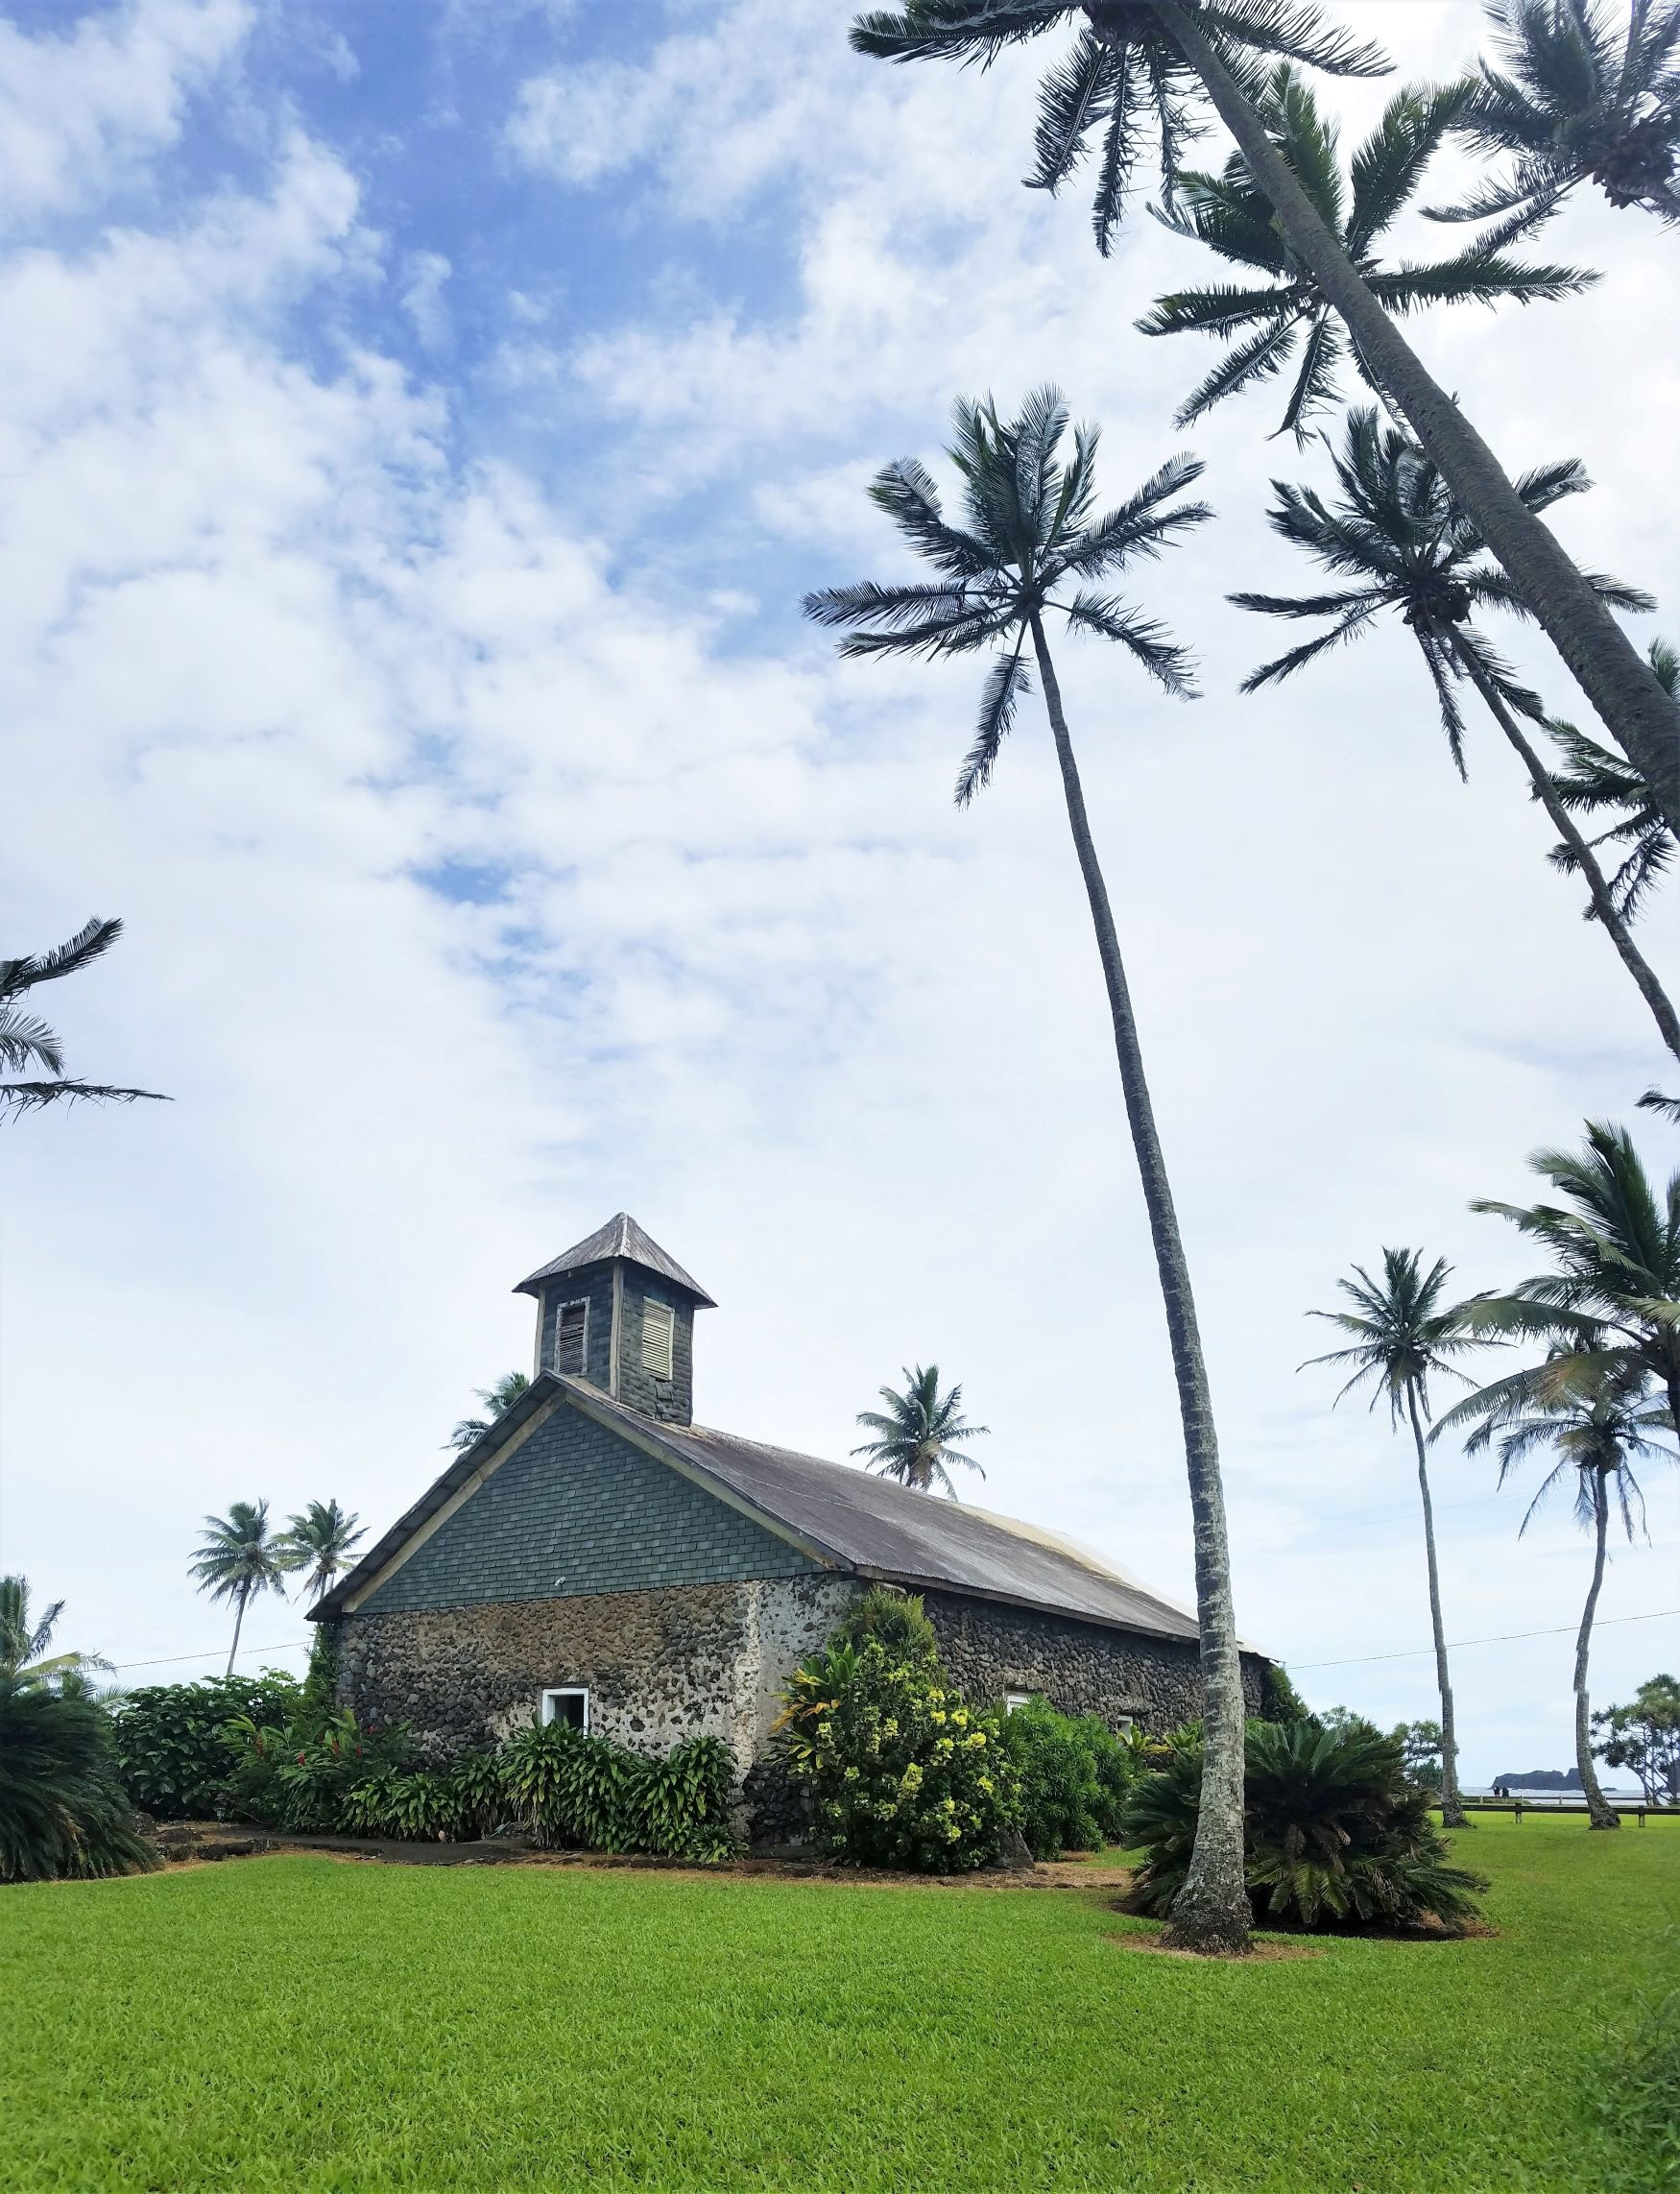 A stone church surrounded by palm trees by the ocean is a stop in this Road to Hana guide.